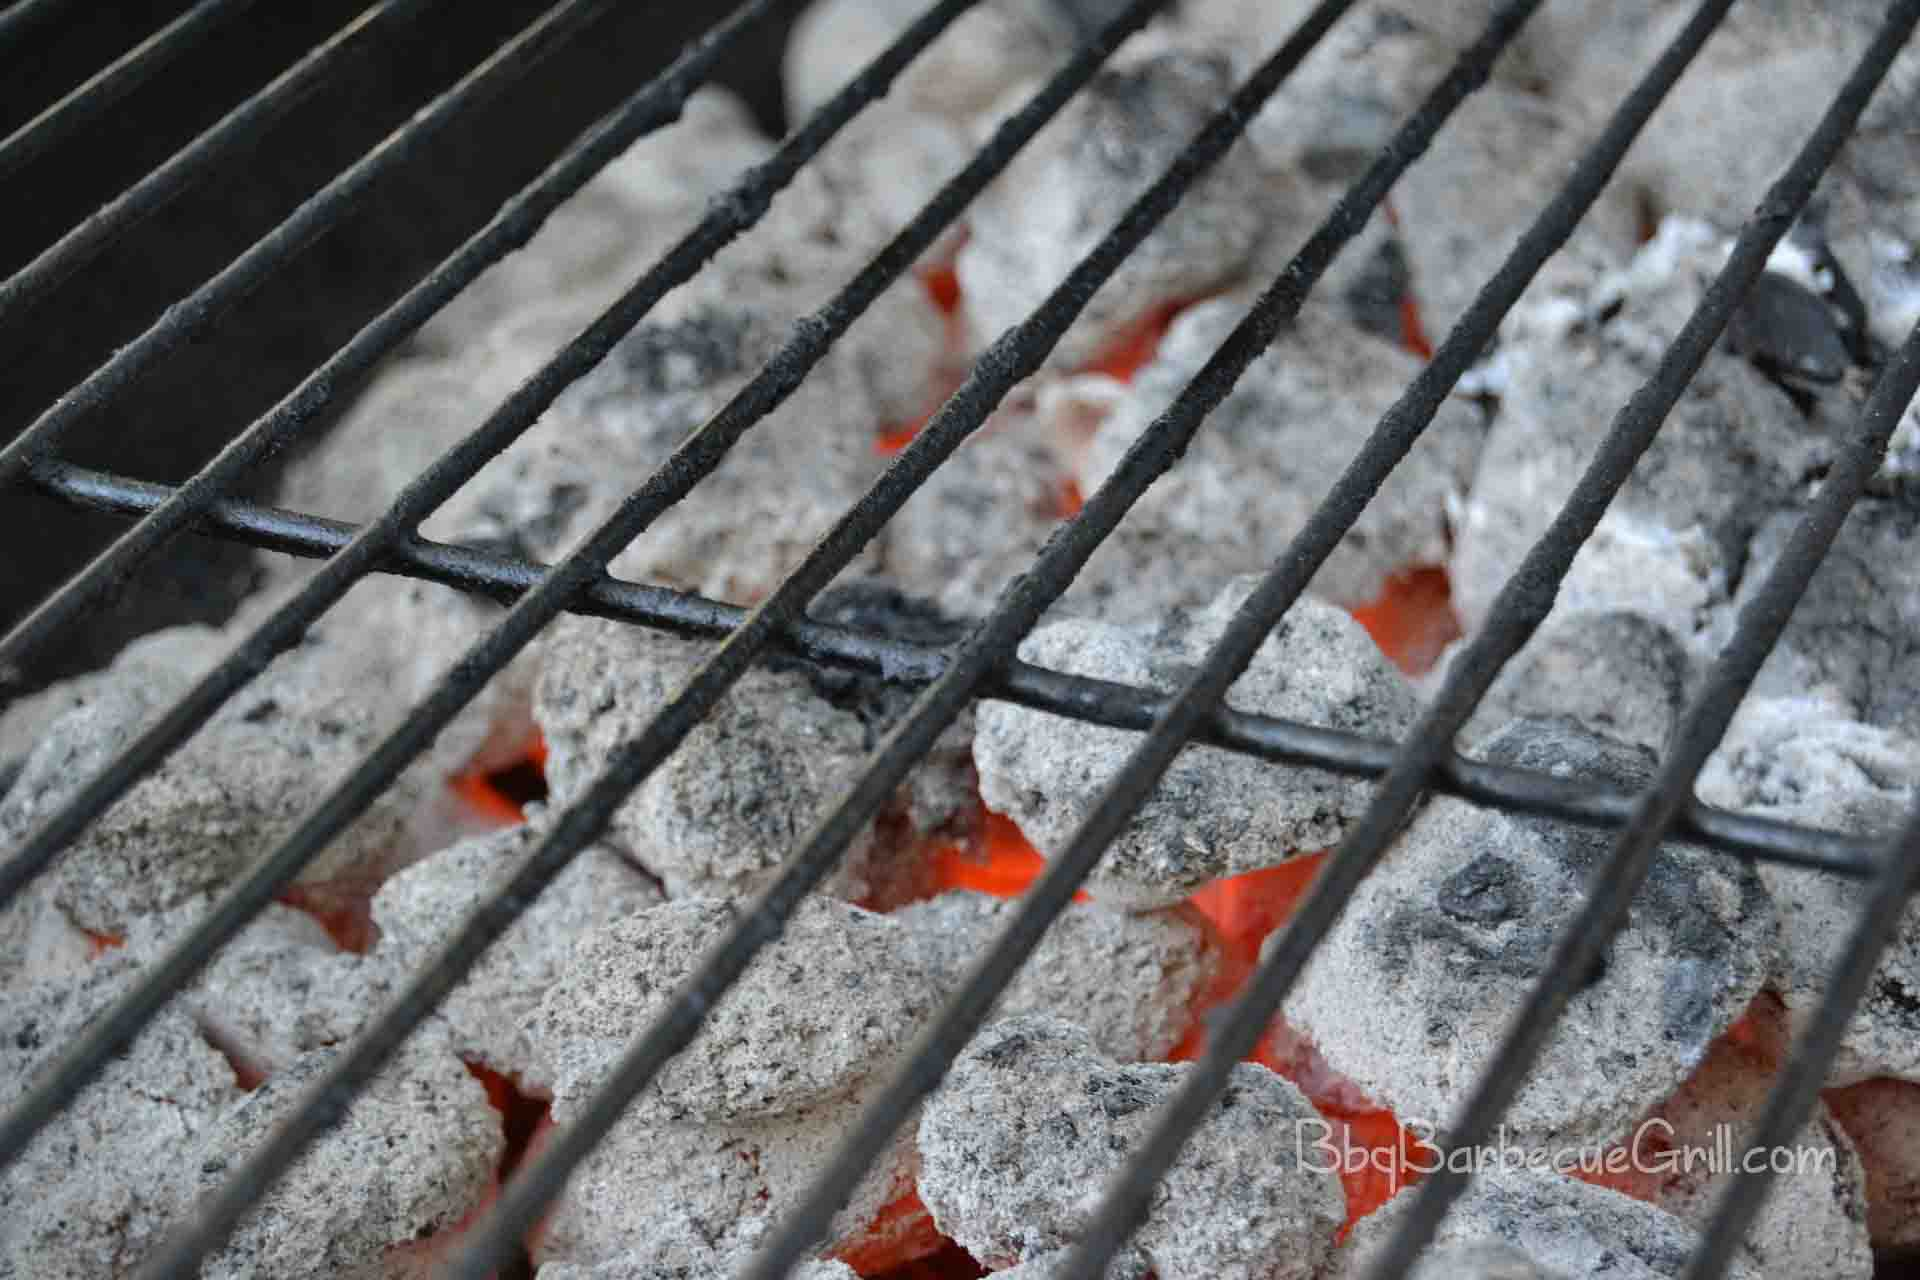 How to barbeque with charcoal